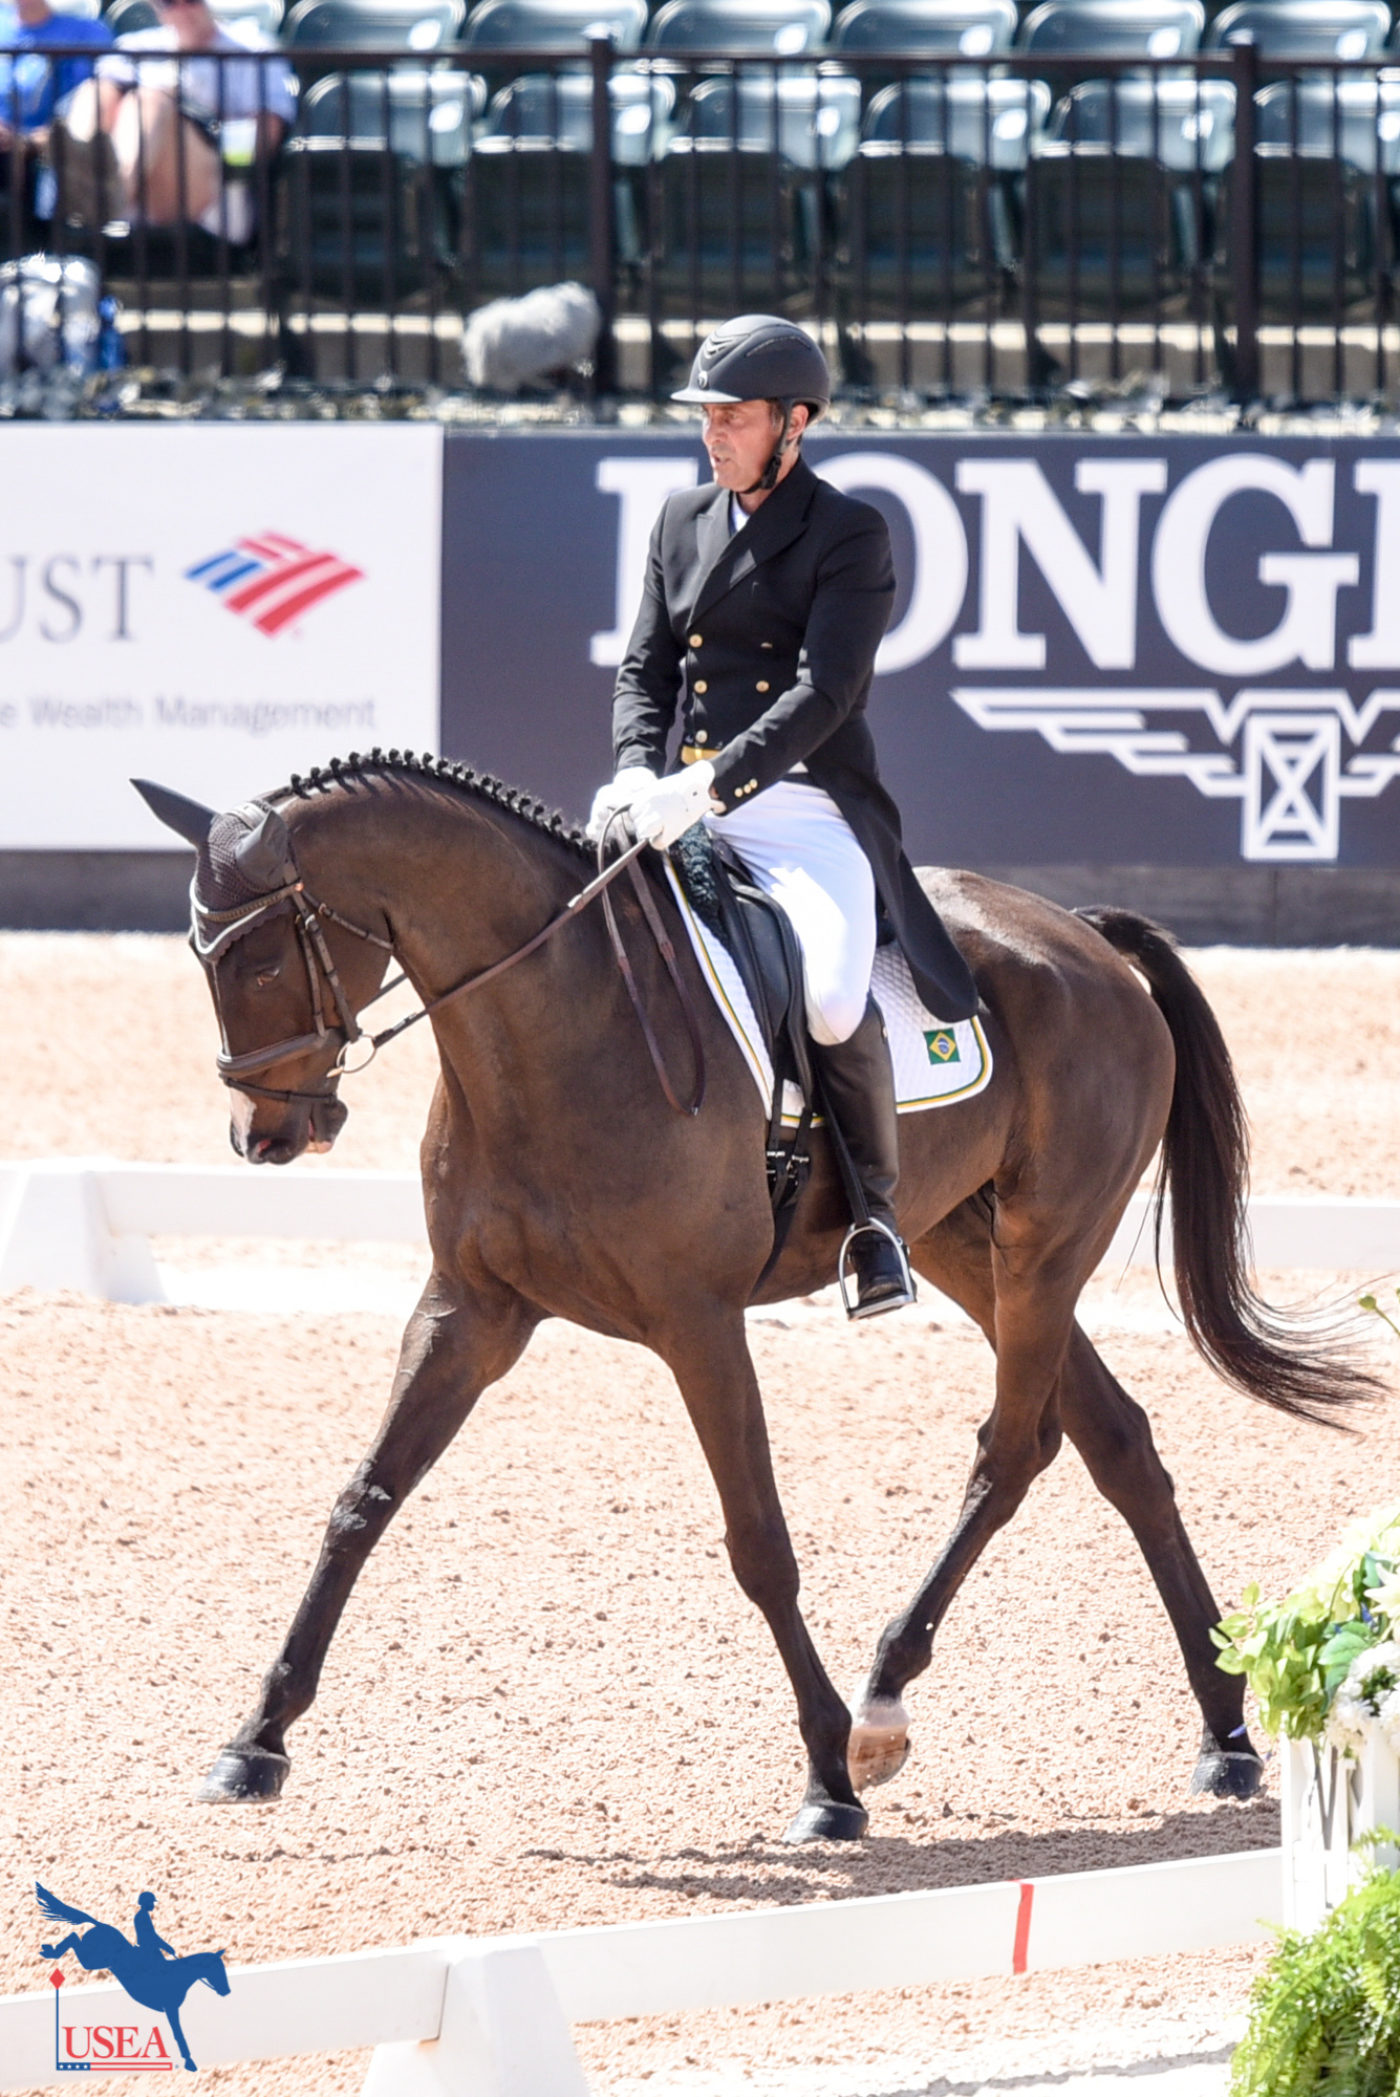 32nd - Marcelo Tosi and Glenfly (BRA) - 36.40